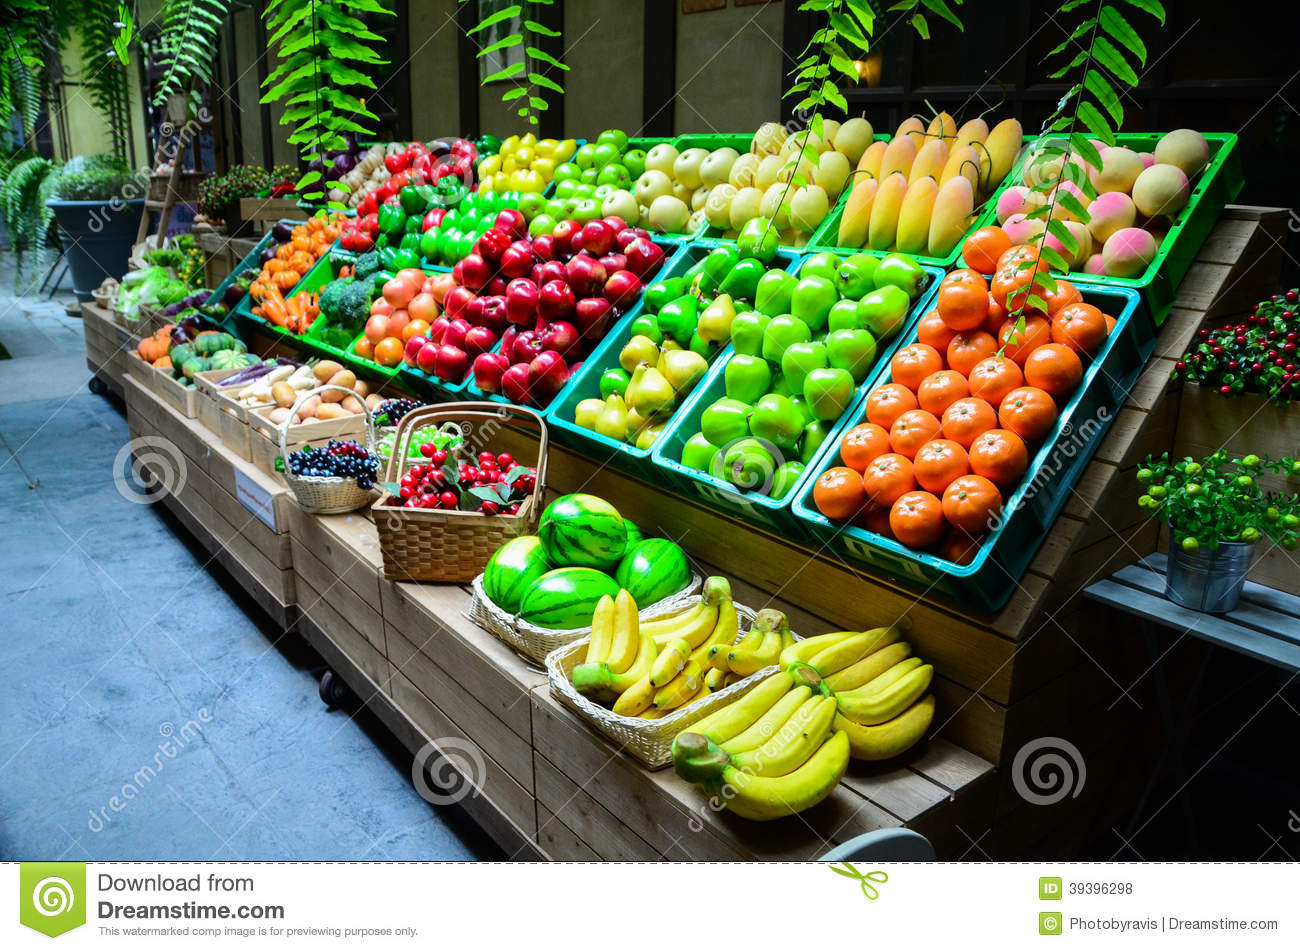 Colorful fruit and vegetable